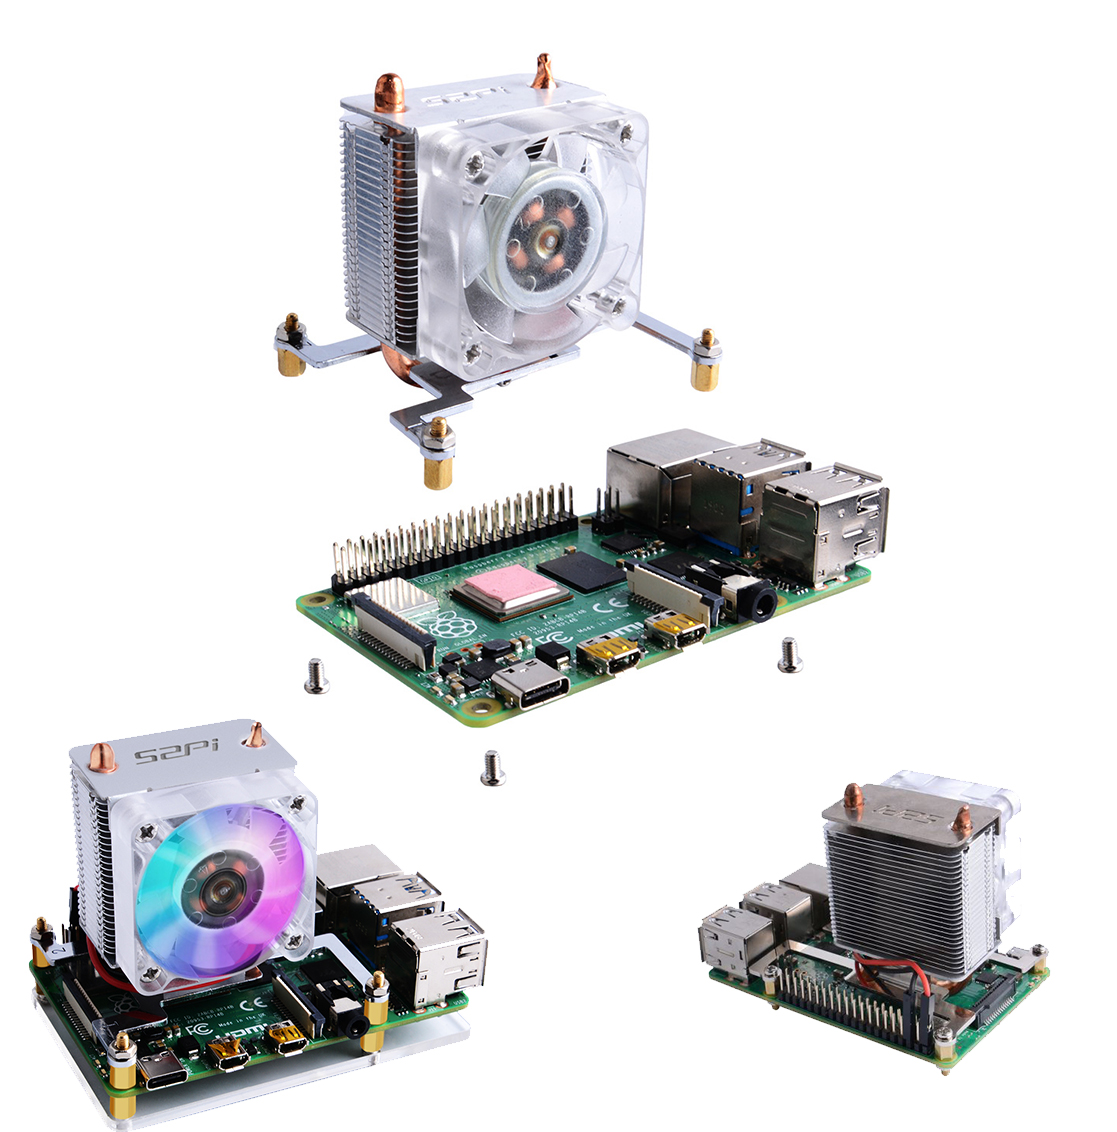 ICE-Tower CPU Cooling Fan V2.0 Super Heat Dissipation Different Colors LEDs for Raspberry Pi 3B+/4B